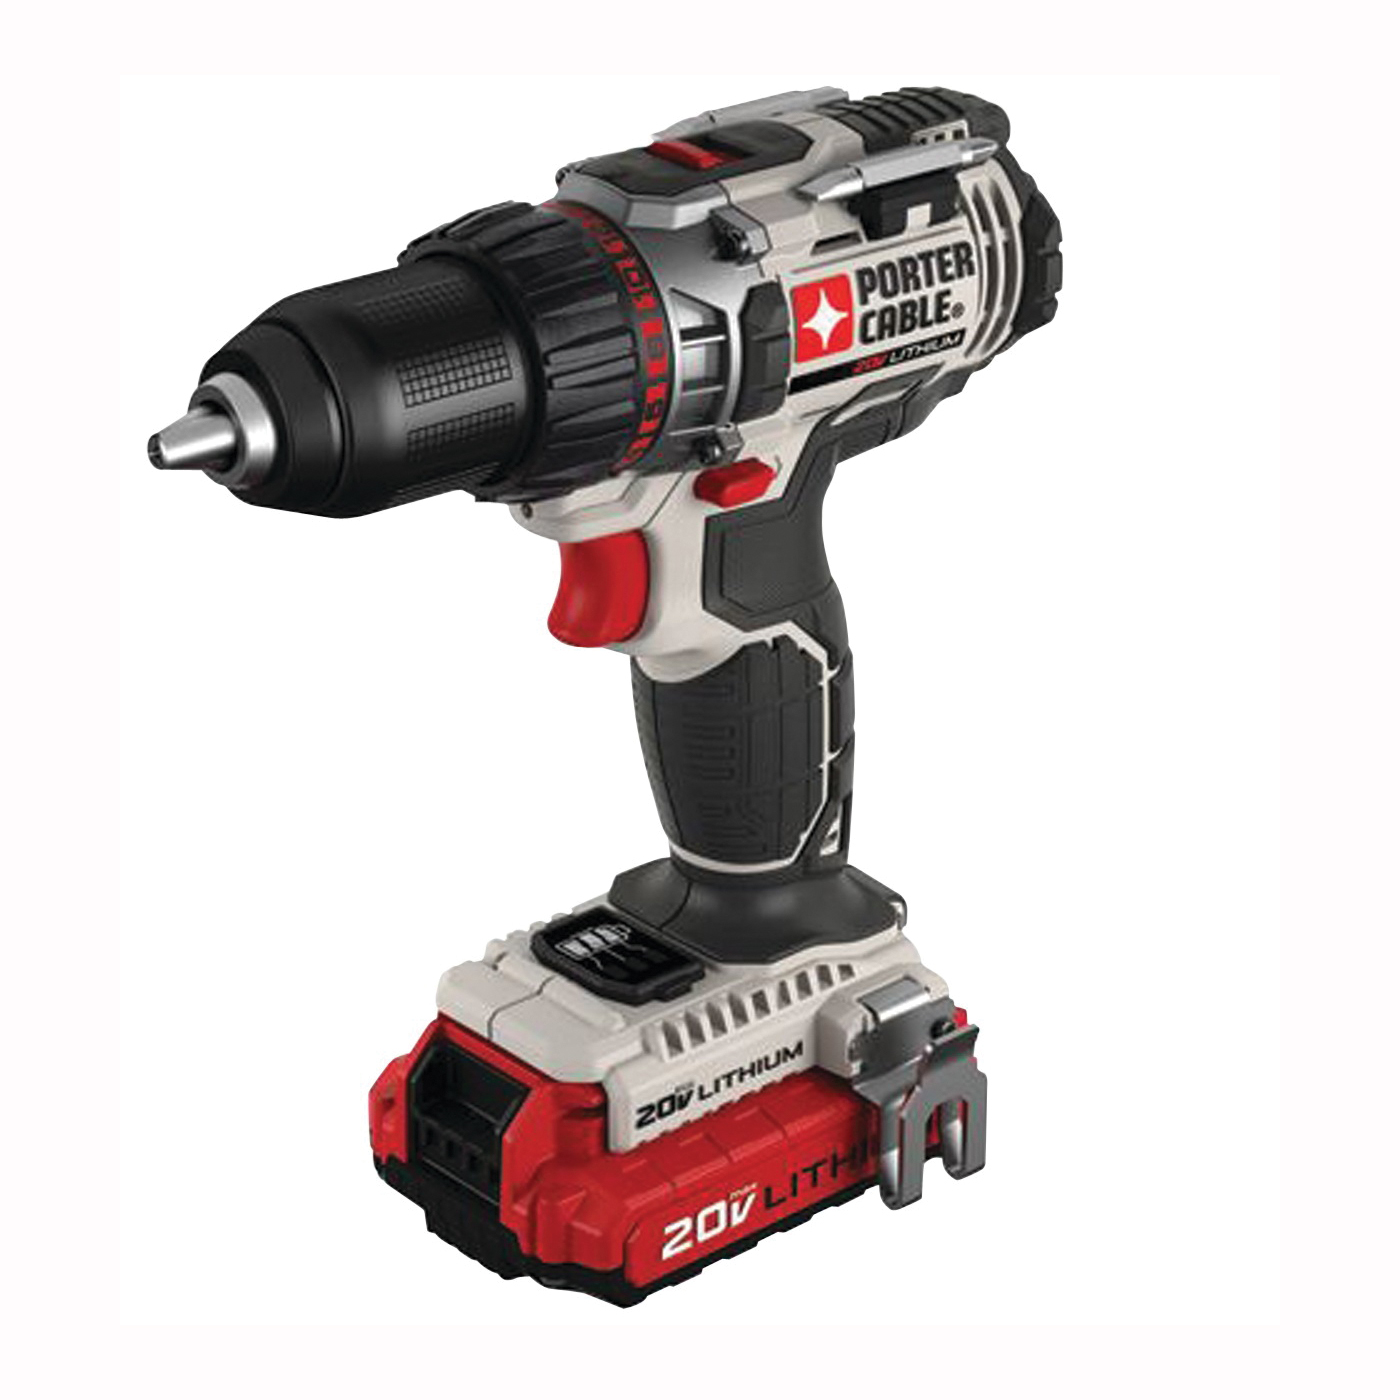 Picture of PORTER-CABLE PCC606LA Drill/Driver Kit, Kit, 20 V Battery, 1/2 in Chuck, Keyless Chuck, Battery Included: Yes